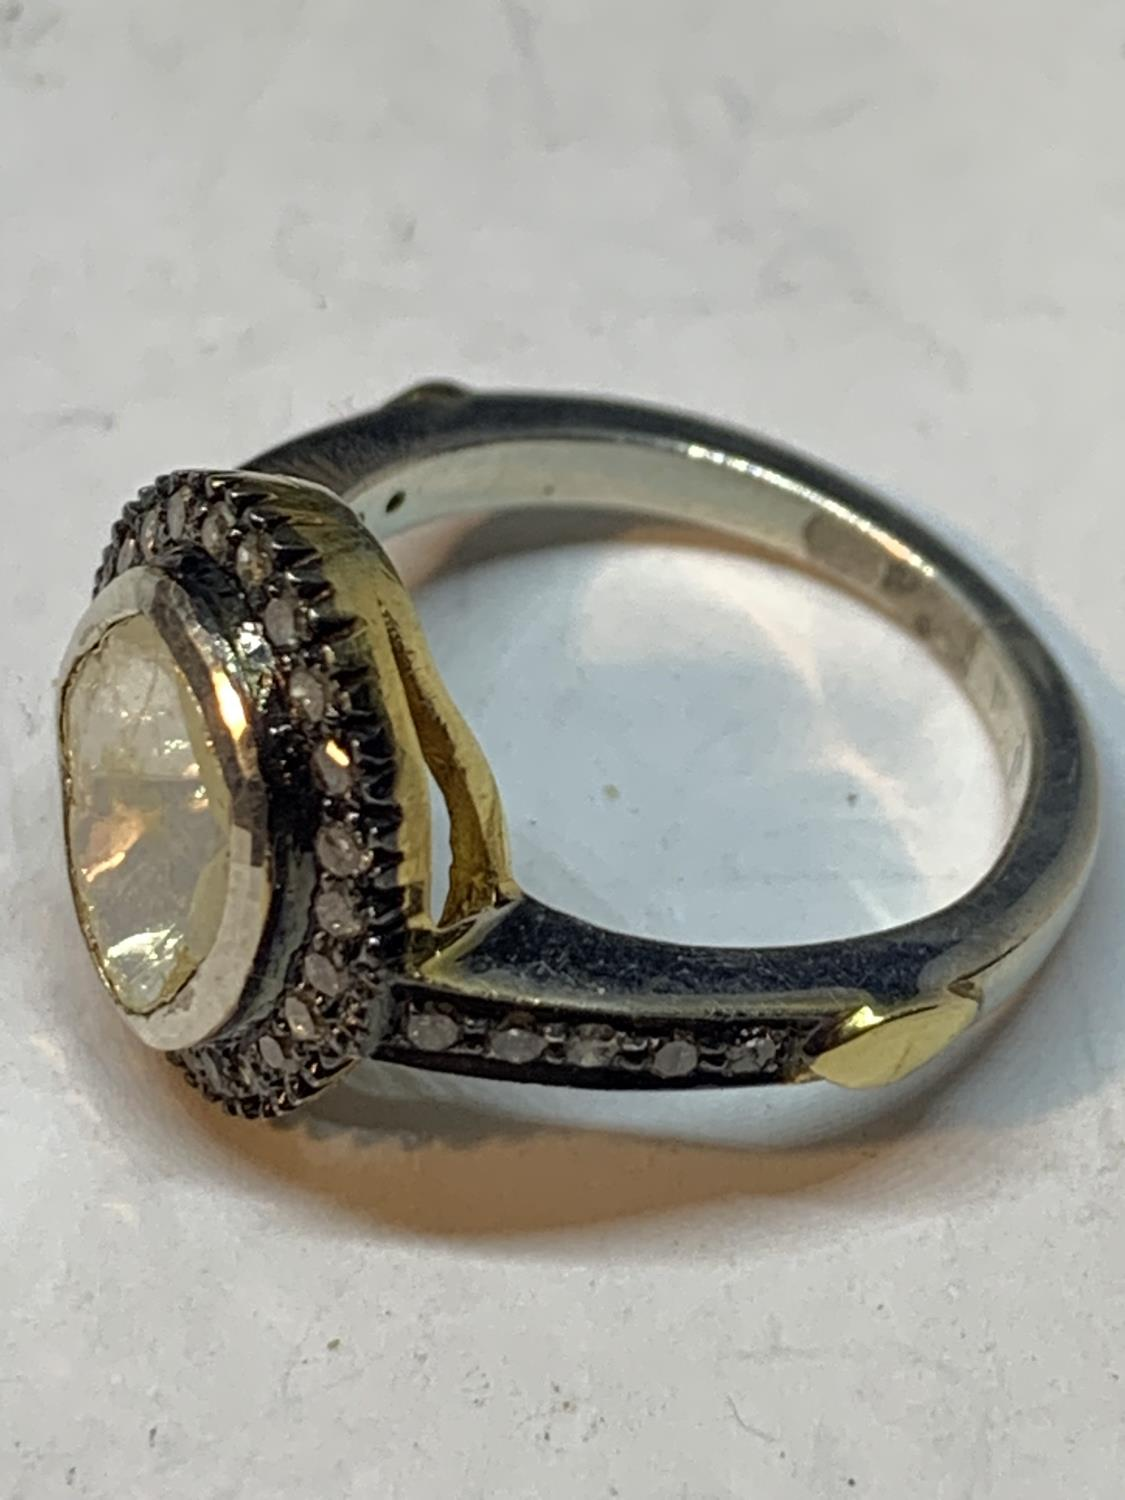 A CONTINENTAL WHITE AND YELLOW METAL RING WITH CENTRE DIAMOND AND SMALLER SURROUNDING DIAMONDS WHICH - Image 6 of 6